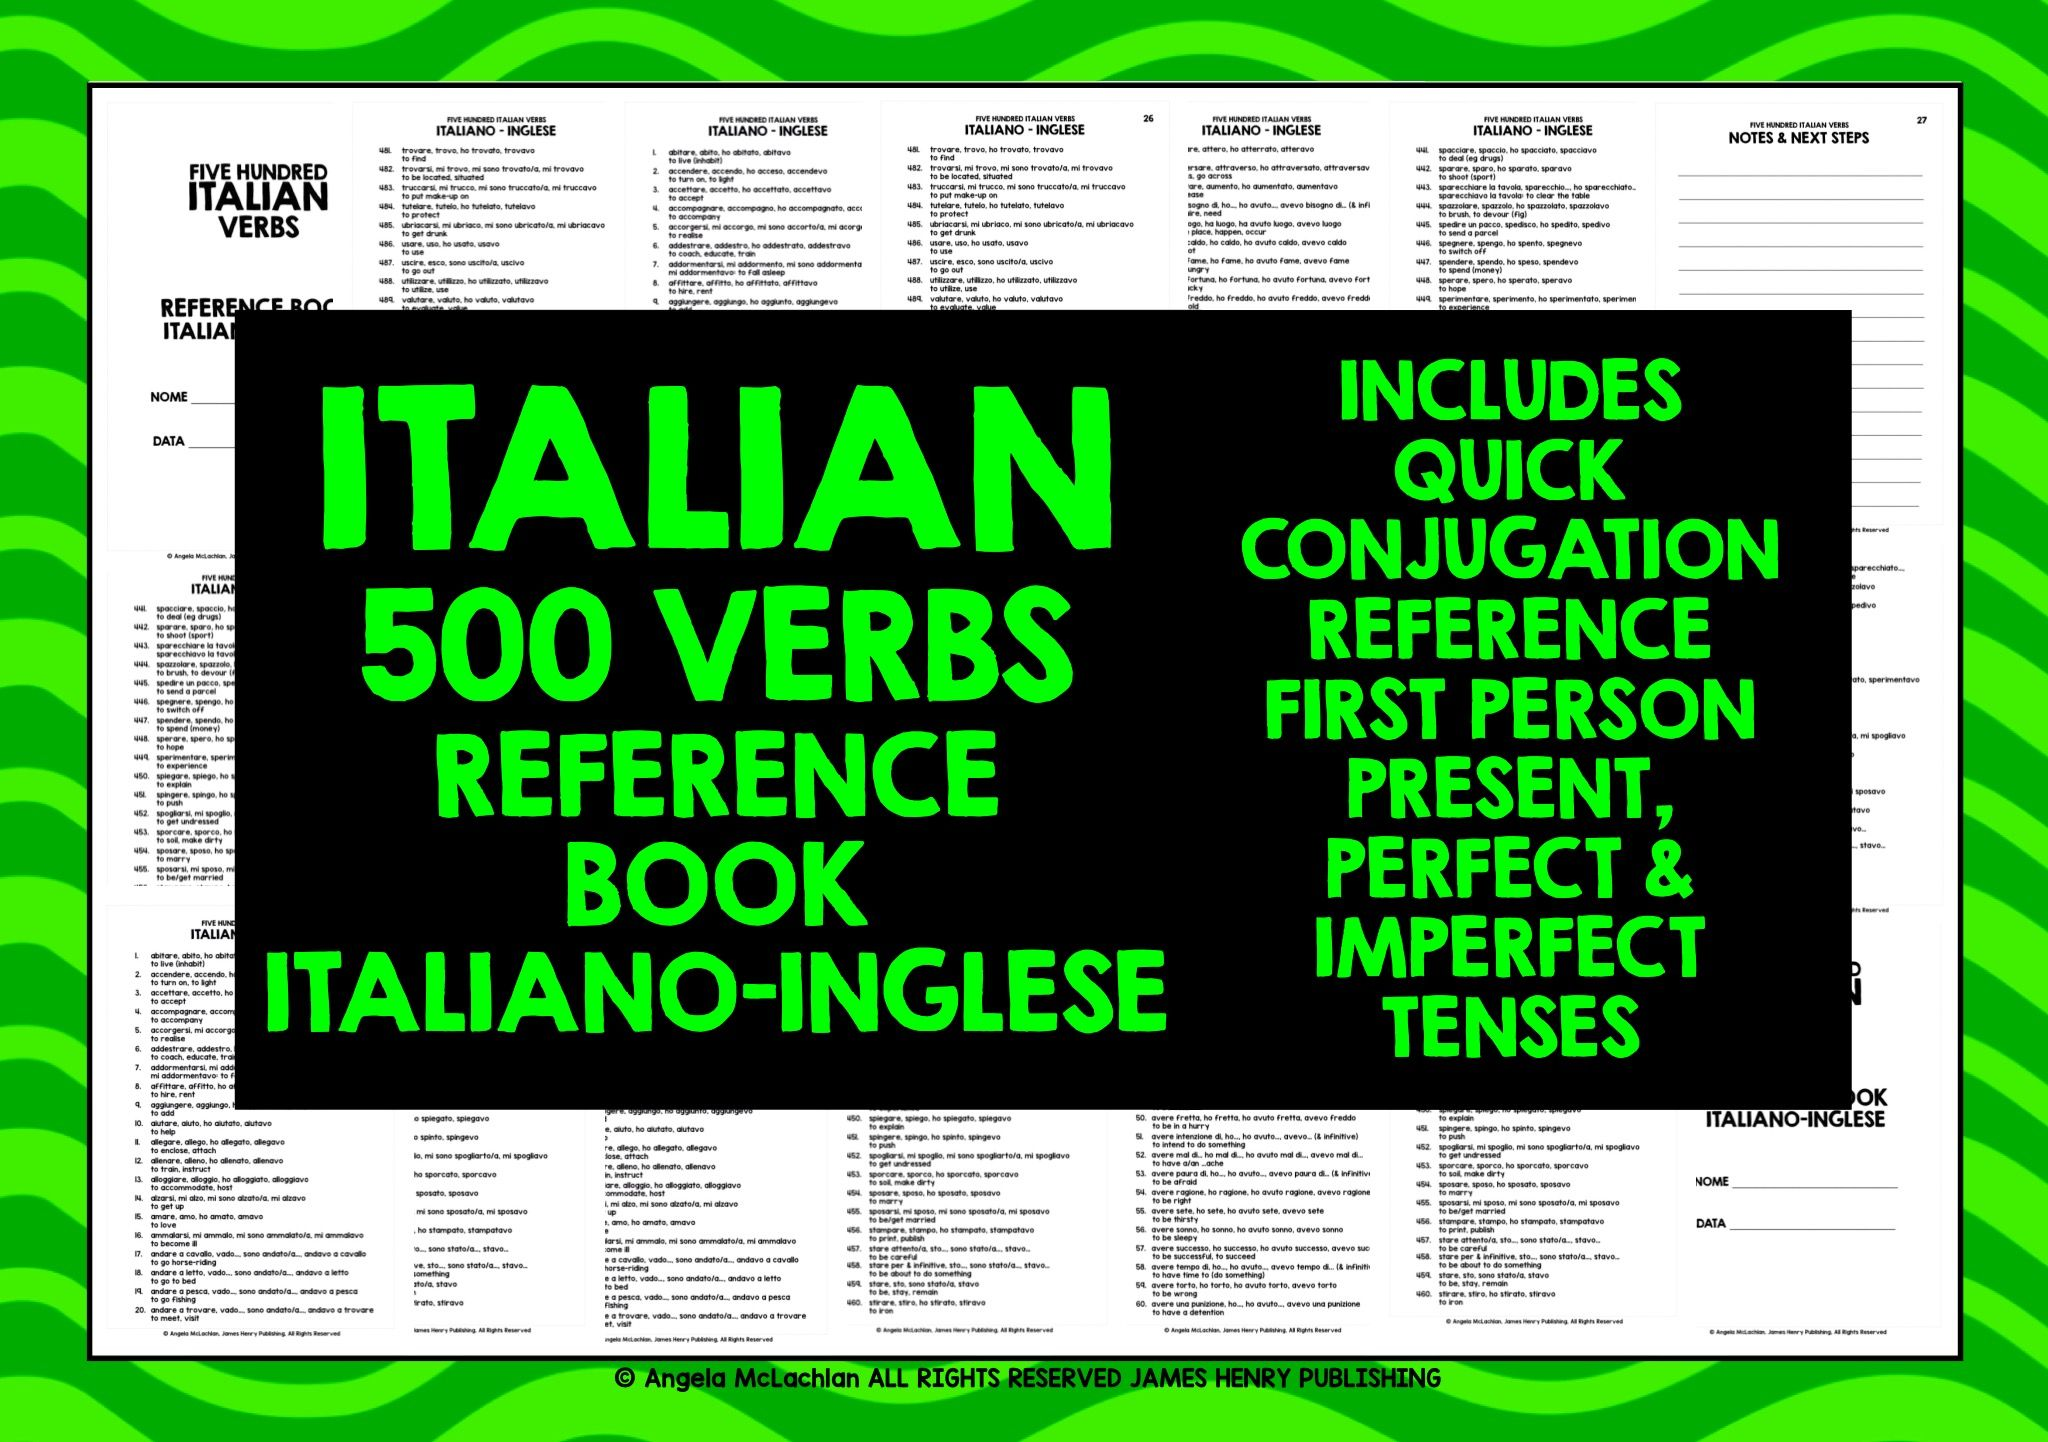 Italian Verbs Reference Book 1